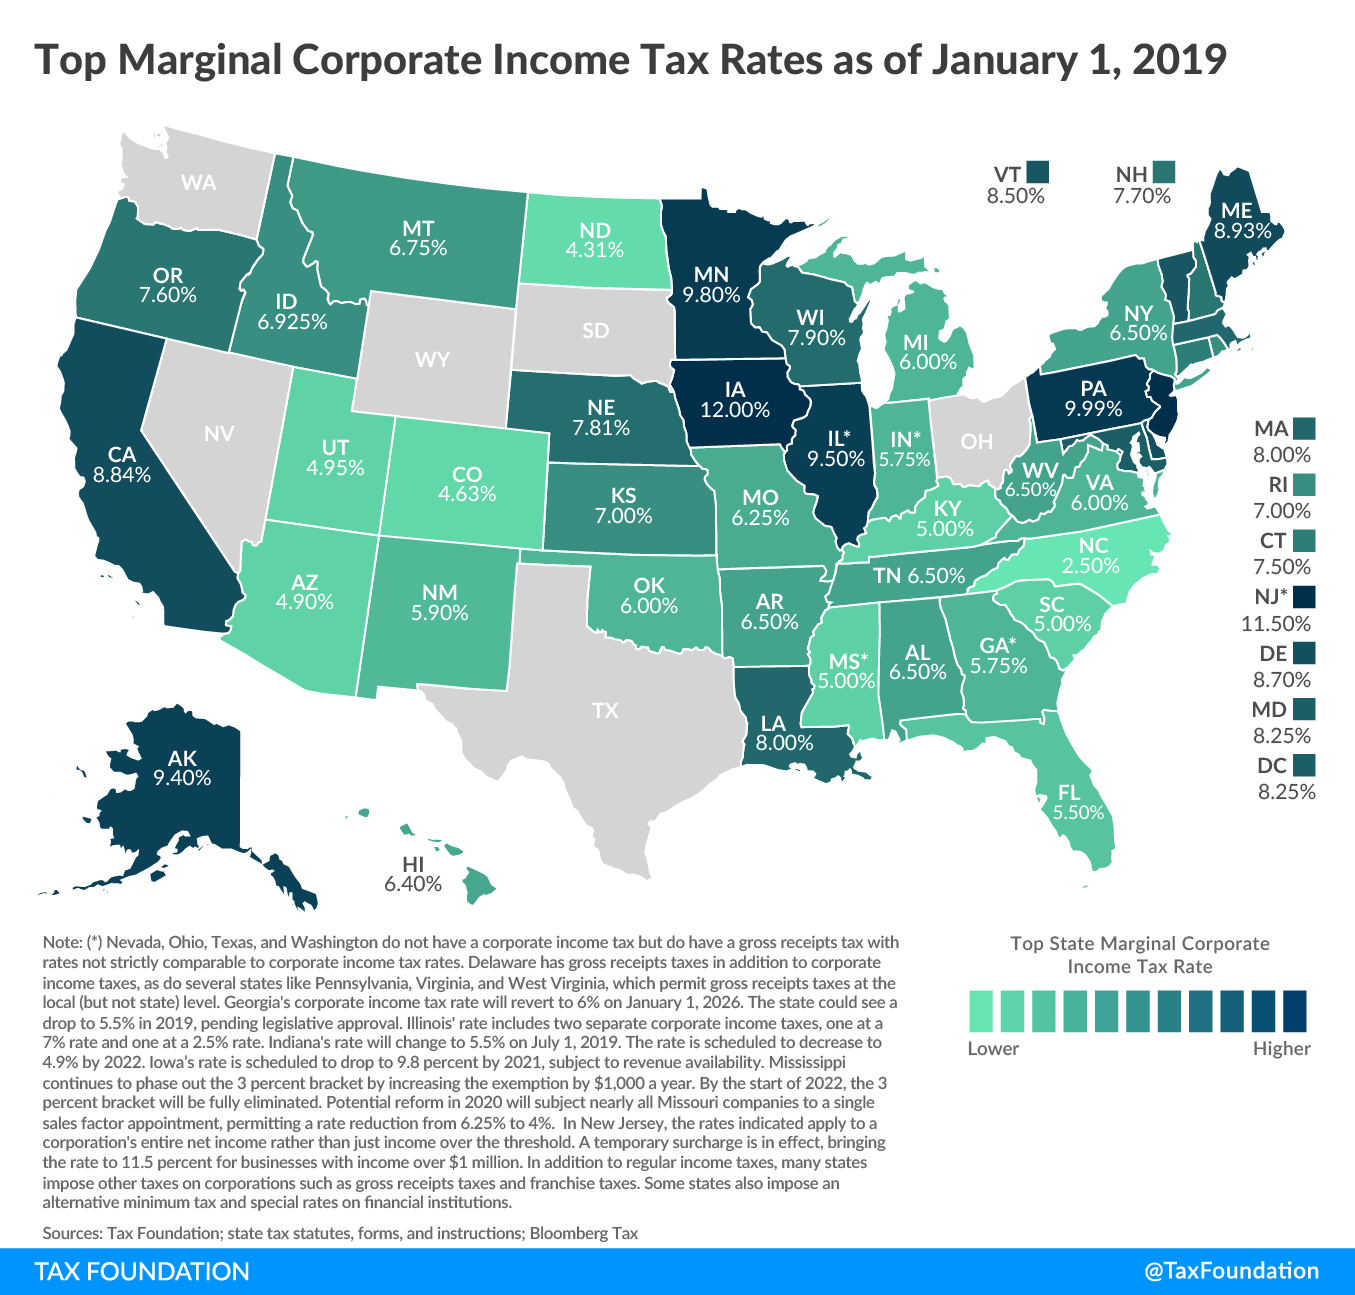 North Carolina Tops List Of Lowest Corporate Tax Rates In